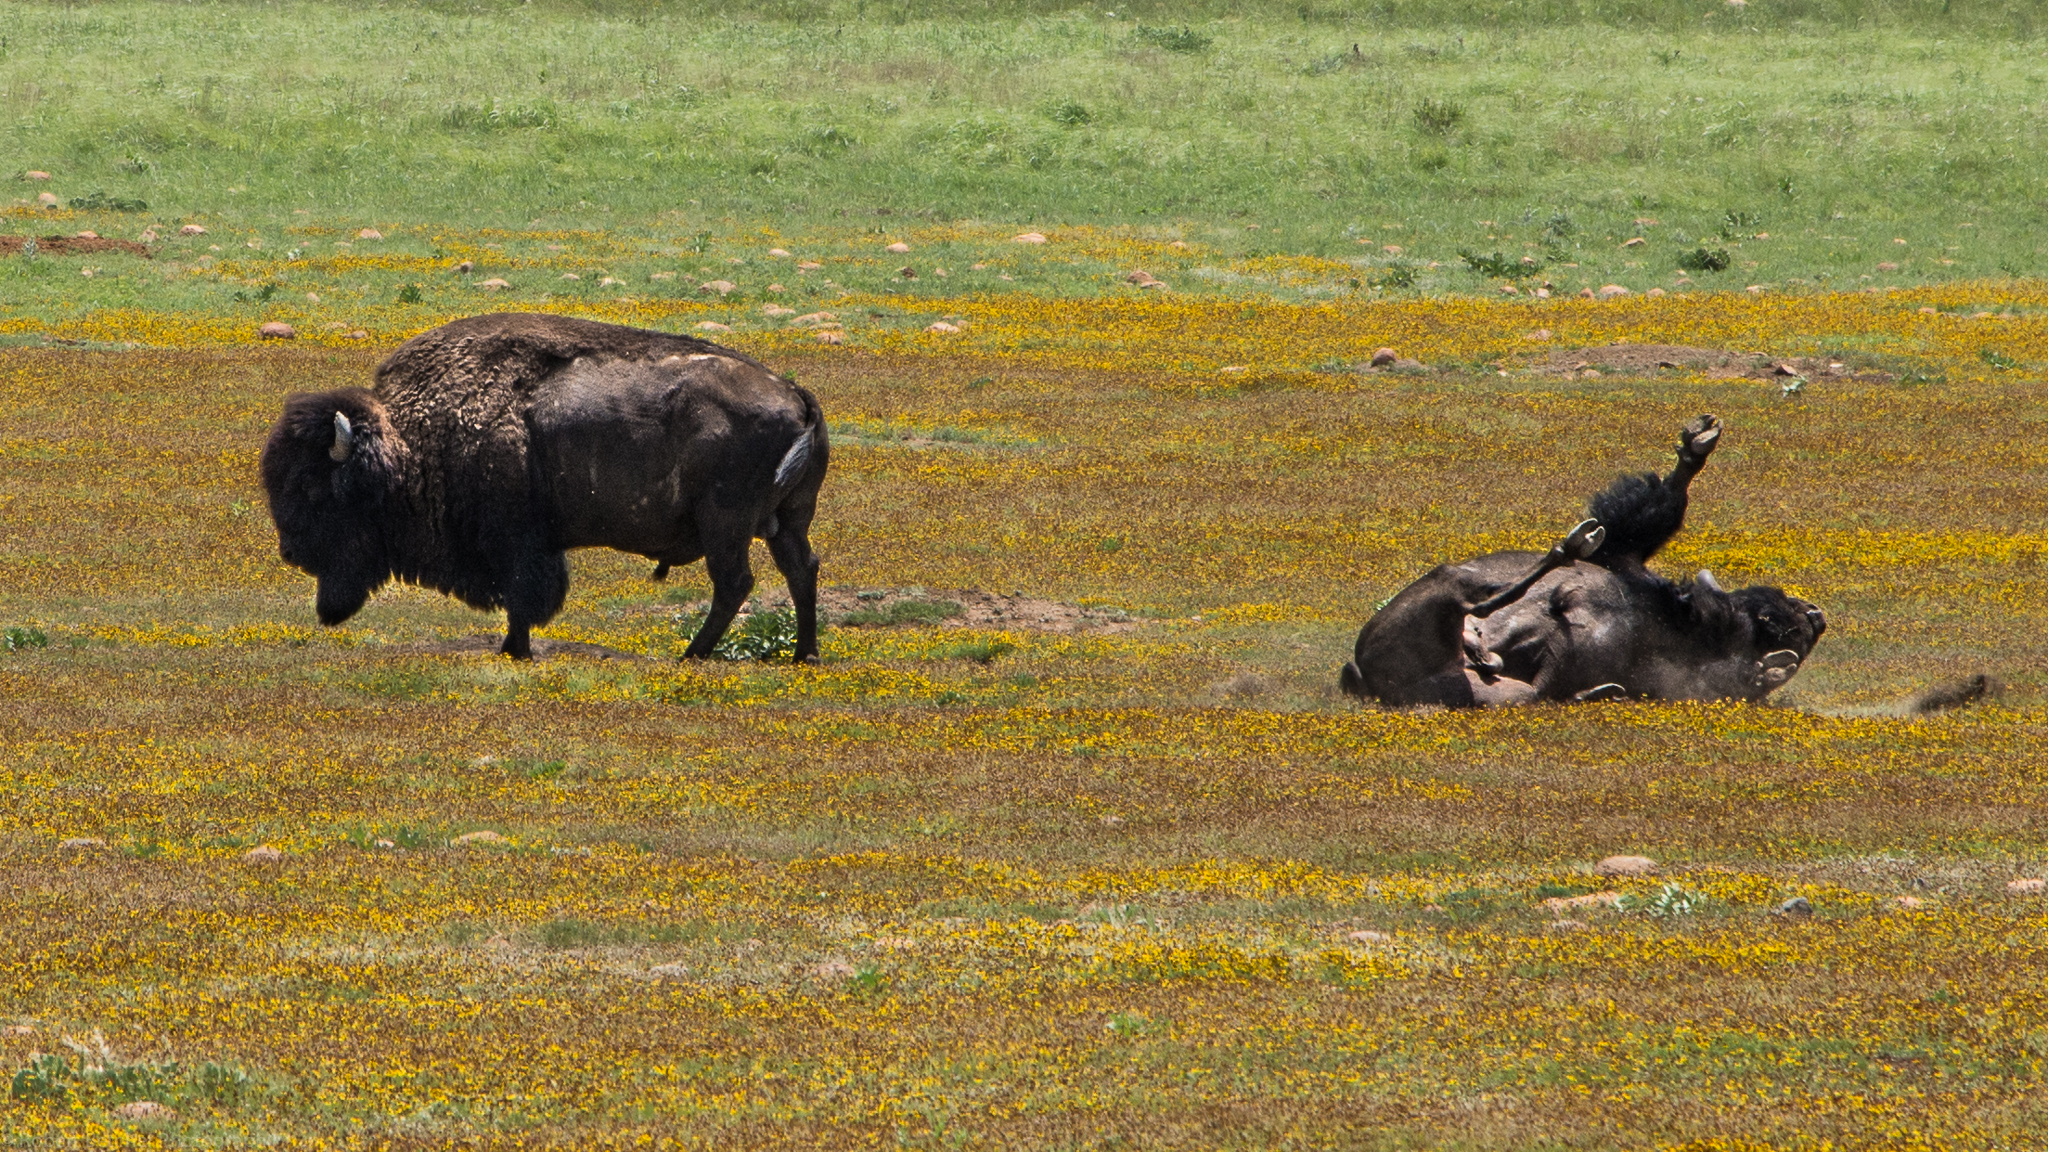 Buffalo at Wichita Mountain Reserve